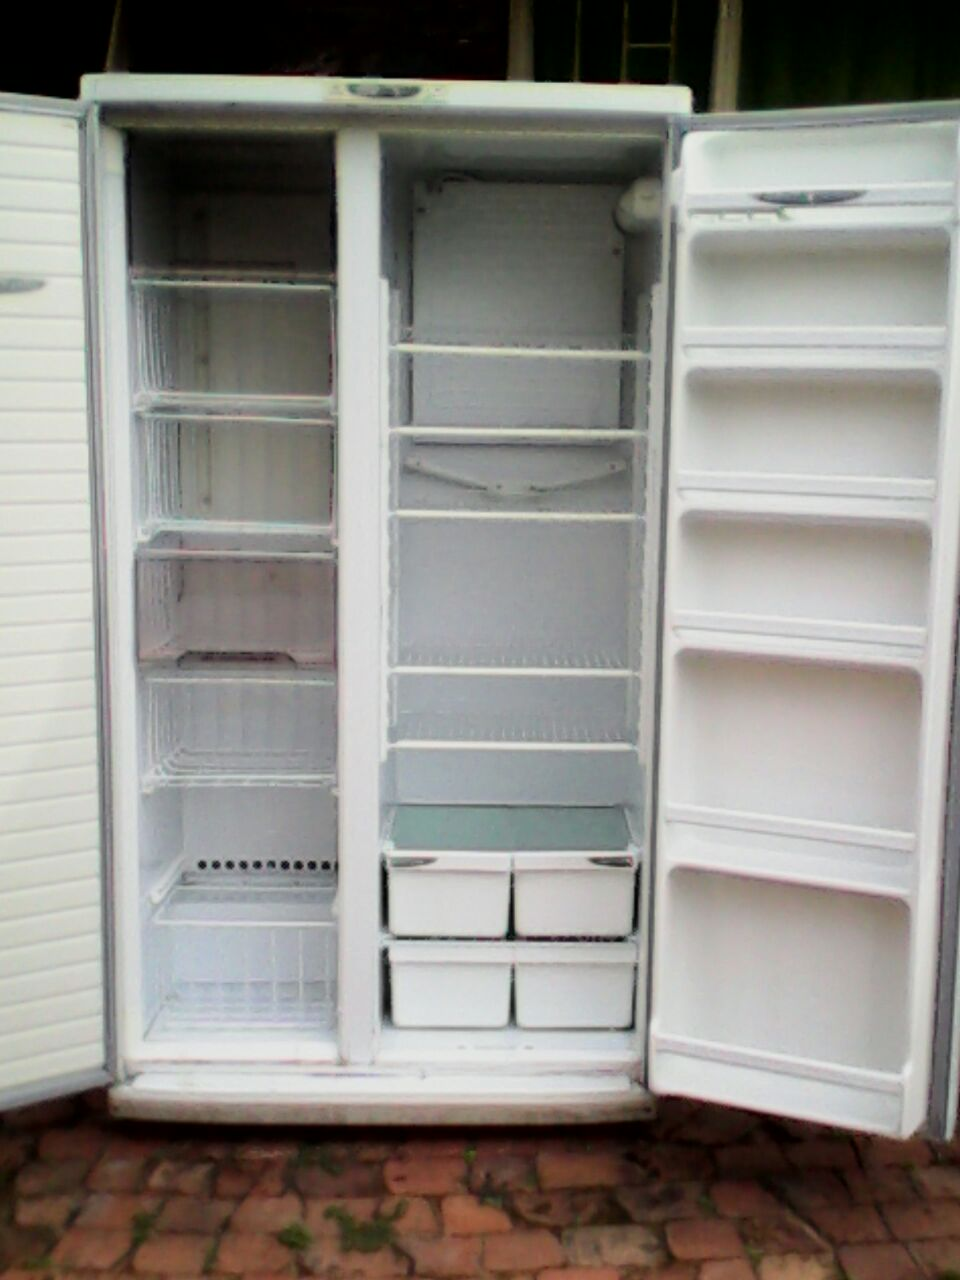 Double door fridge/freezer